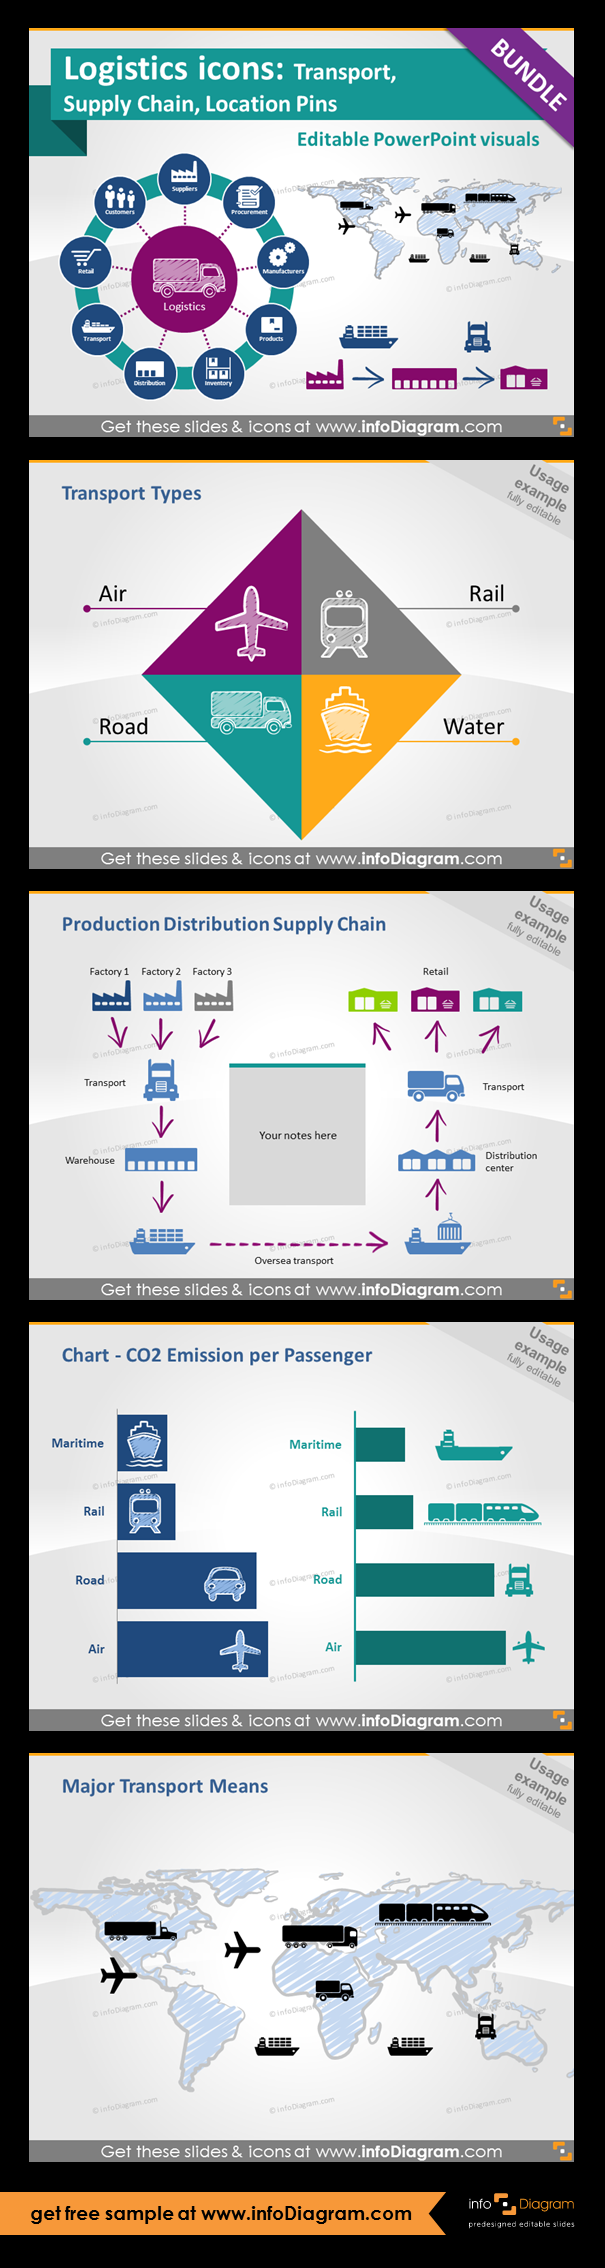 Logistics icons: Transport, Supply Chain Management, SCM